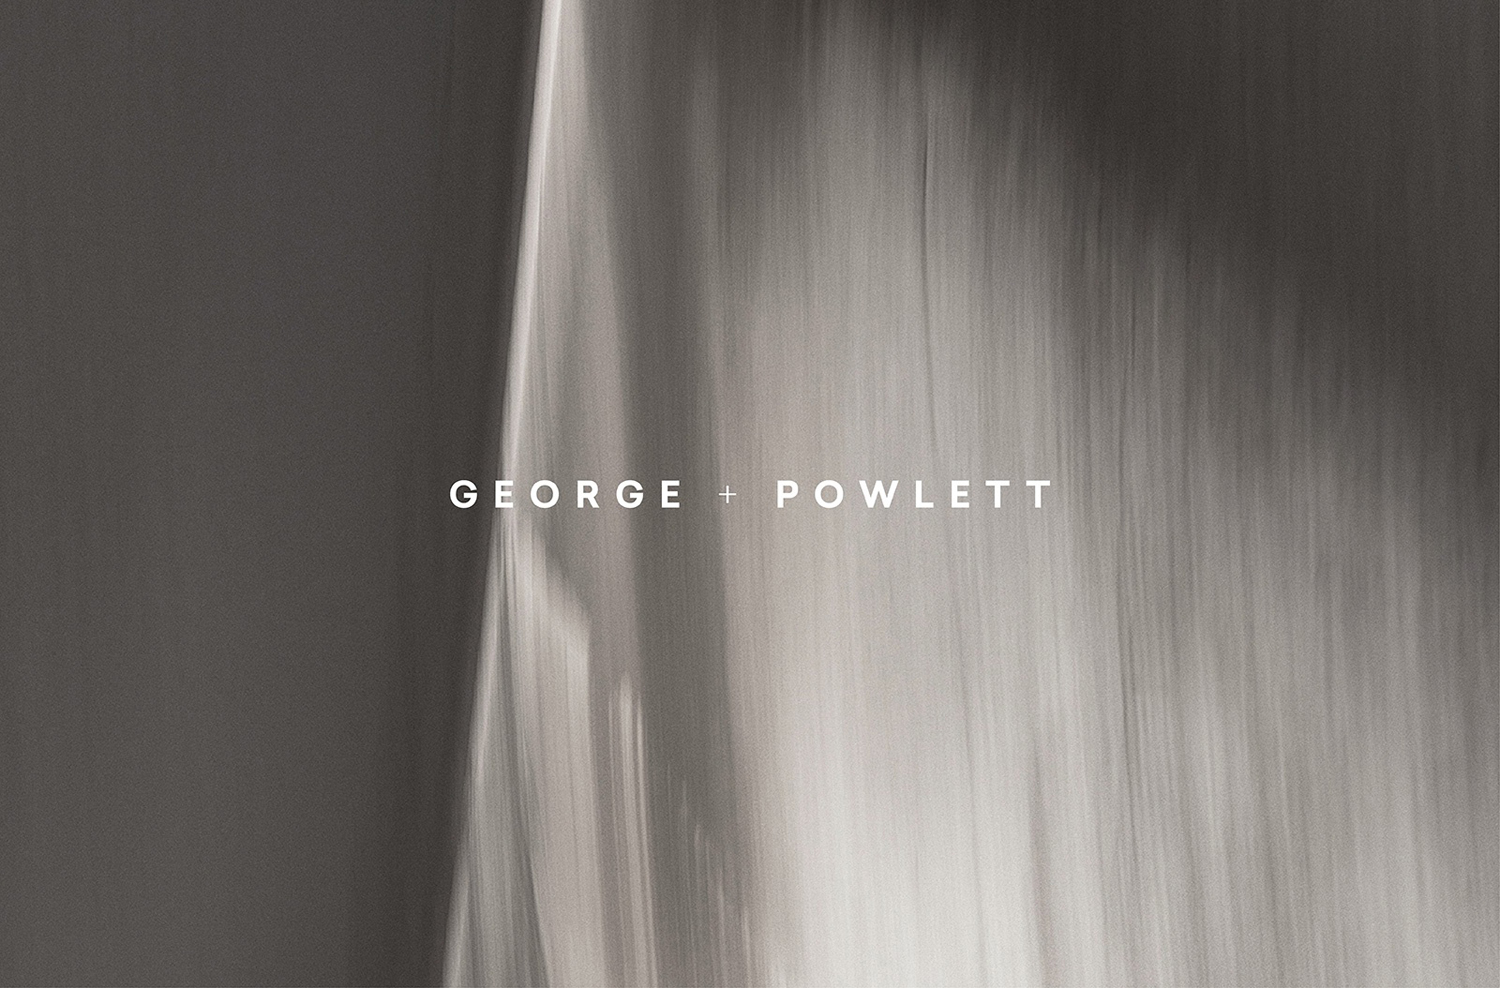 Brand identity and logotype by Studio Brave for East Melbourne residential property development George + Powlett